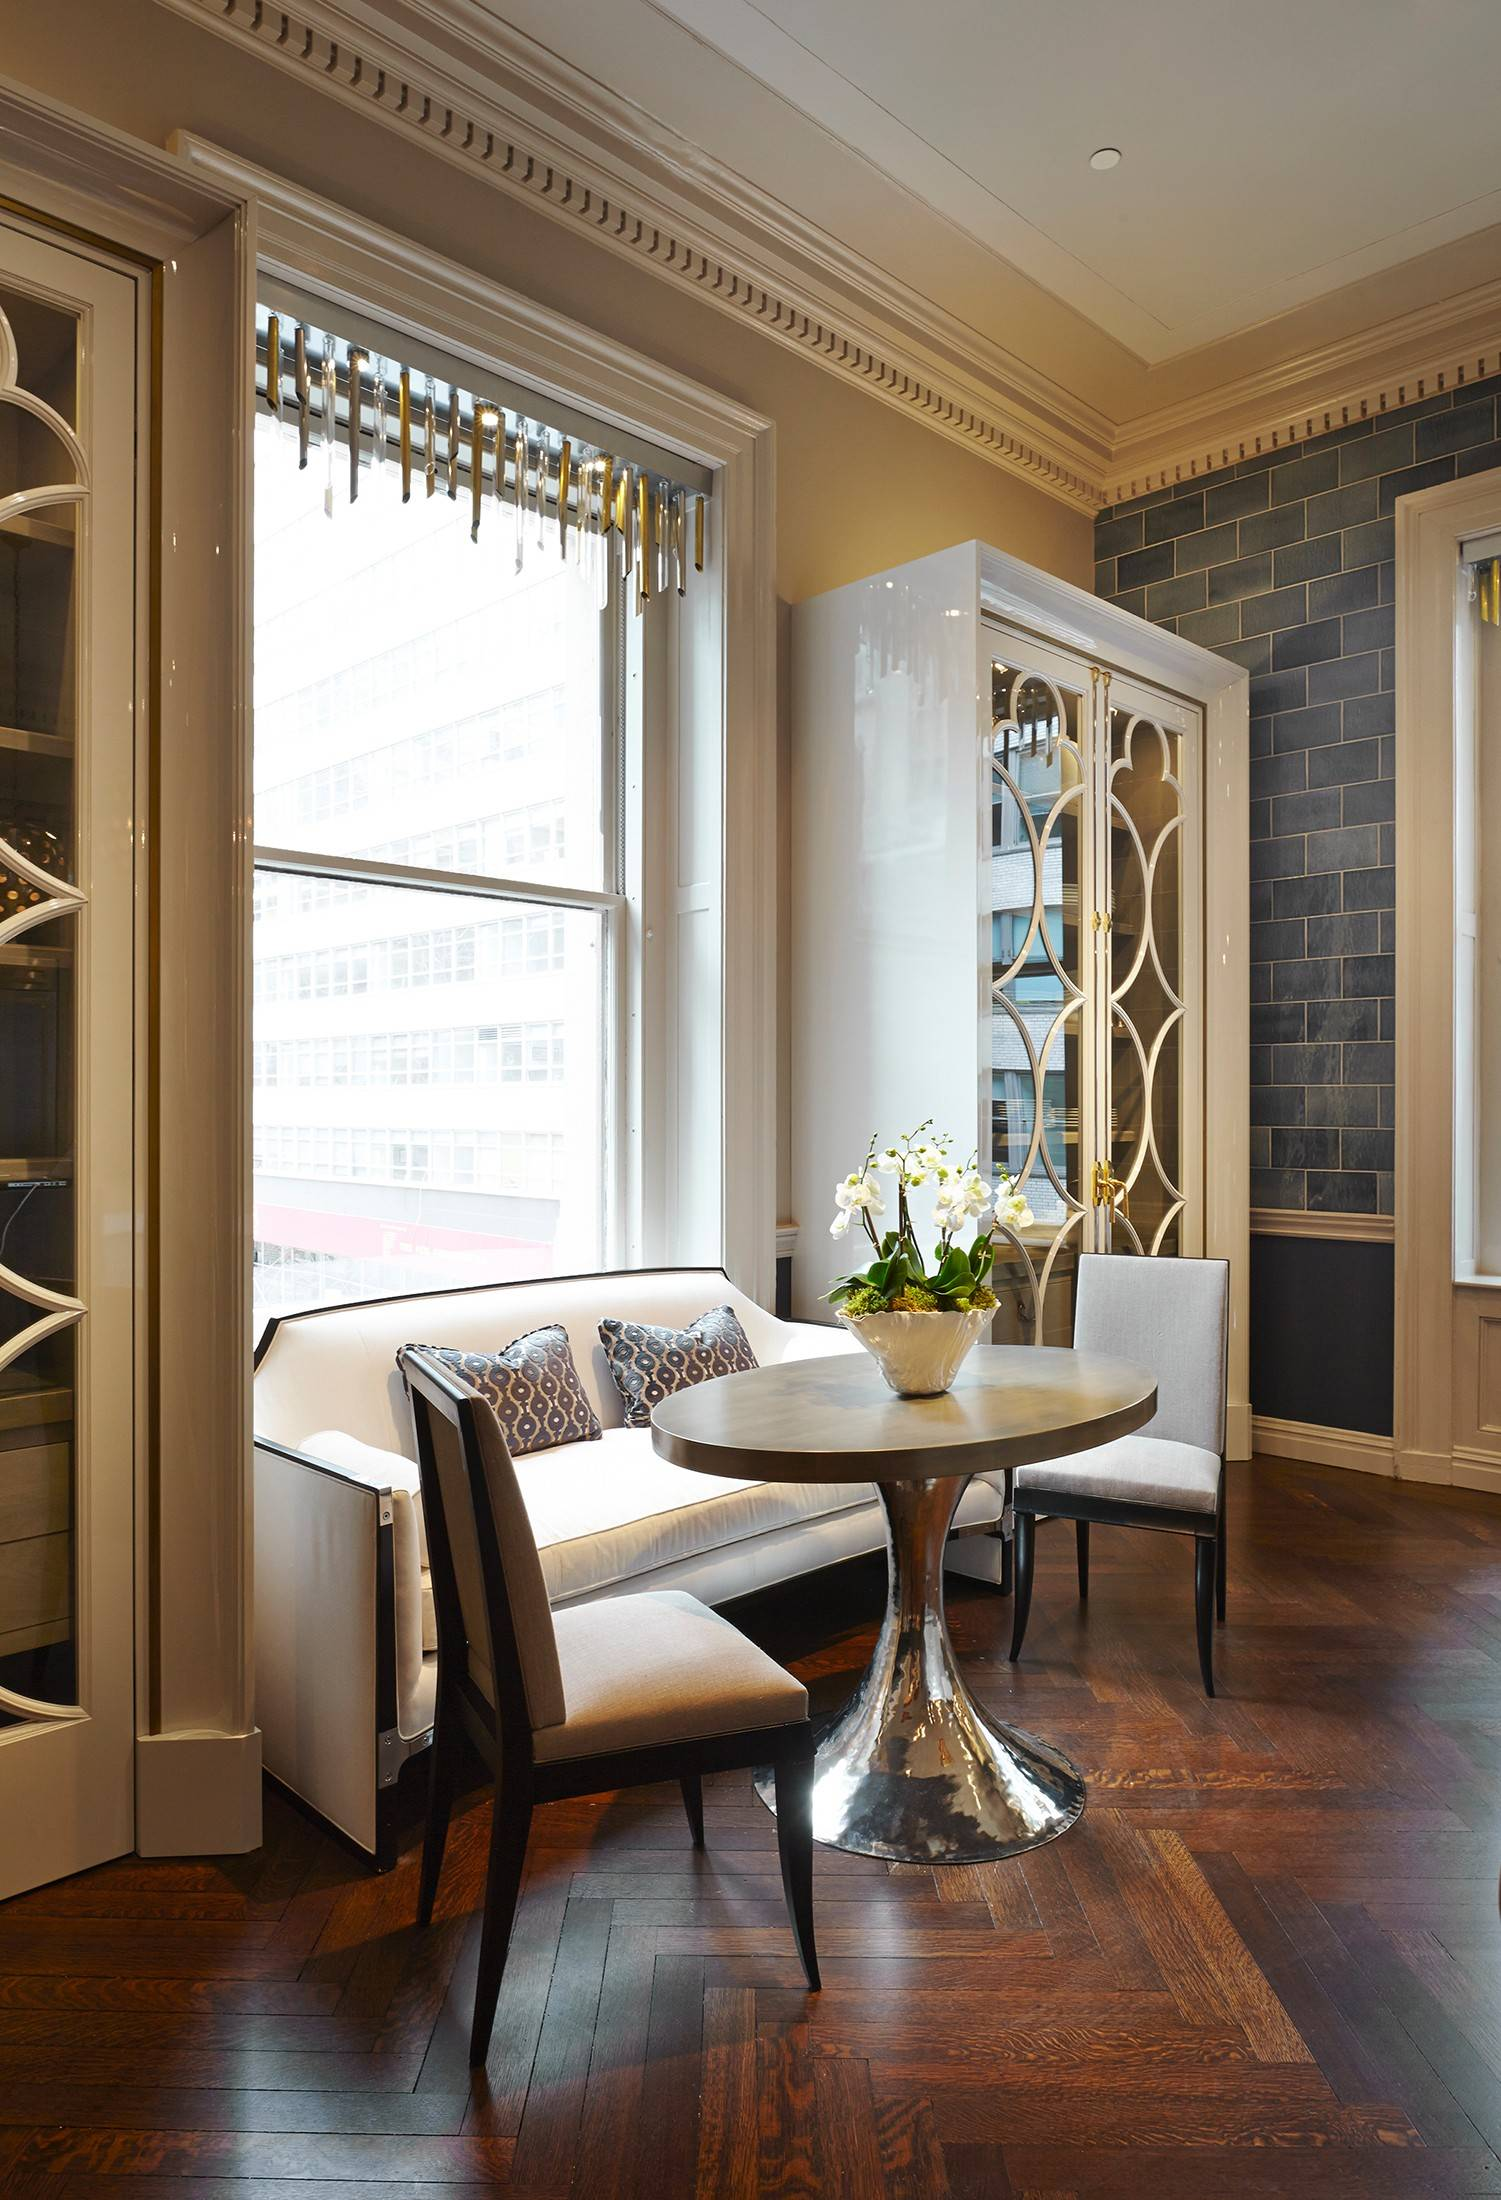 Room 13 of the Kips Bay Show House 2014 in New York is Matthew Quinn's glamorous kitchen. It has nine-foot-tall glass-front silvery gray cabinets whose quatrefoil detail was taken from the windows at St. Patrick's Cathedral.